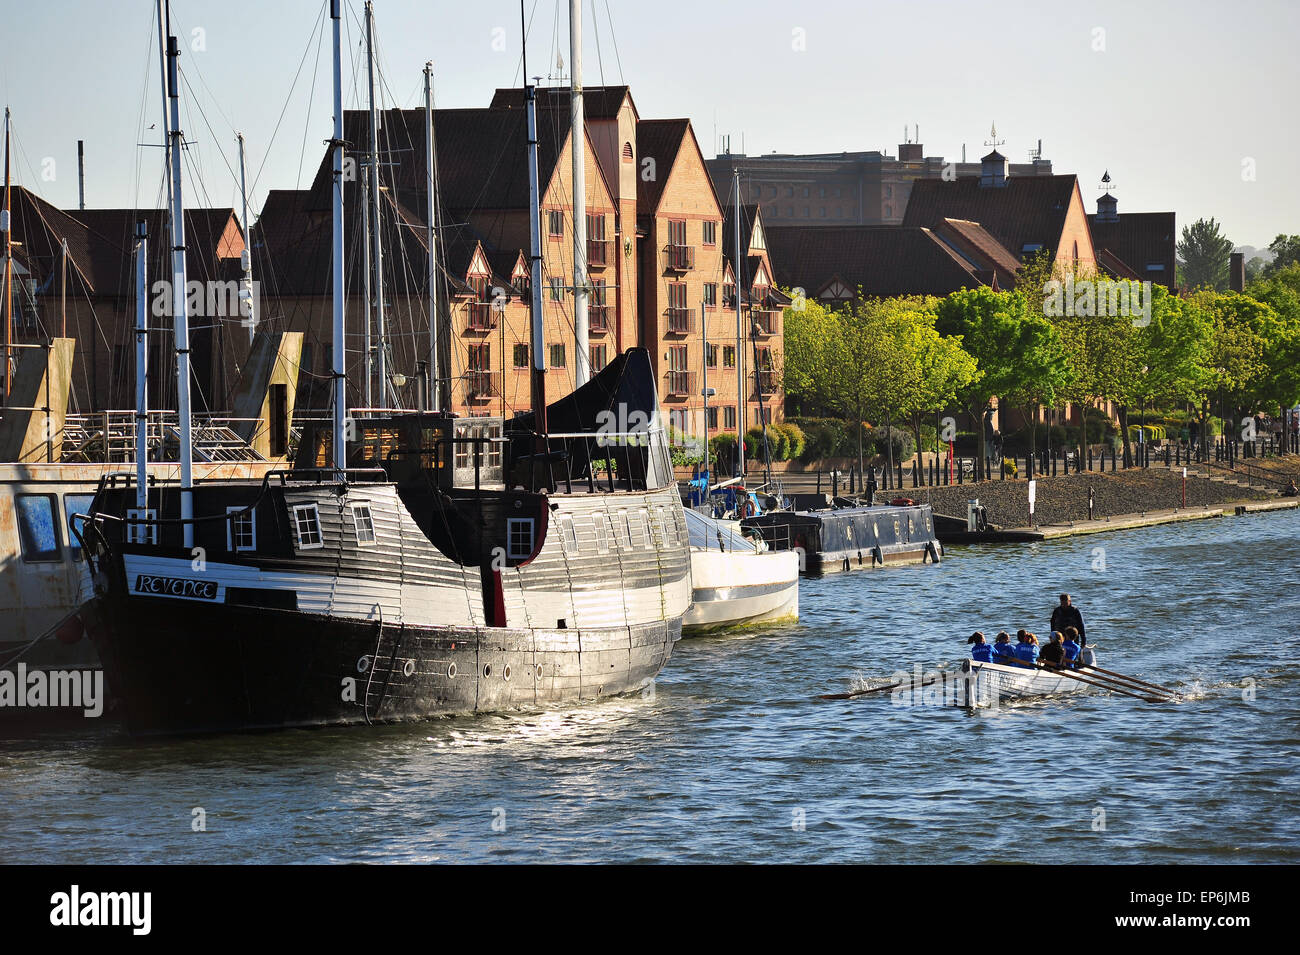 Rowers in a rowing boat pass a large sailing boat in the Bristol Harbour waters. - Stock Image